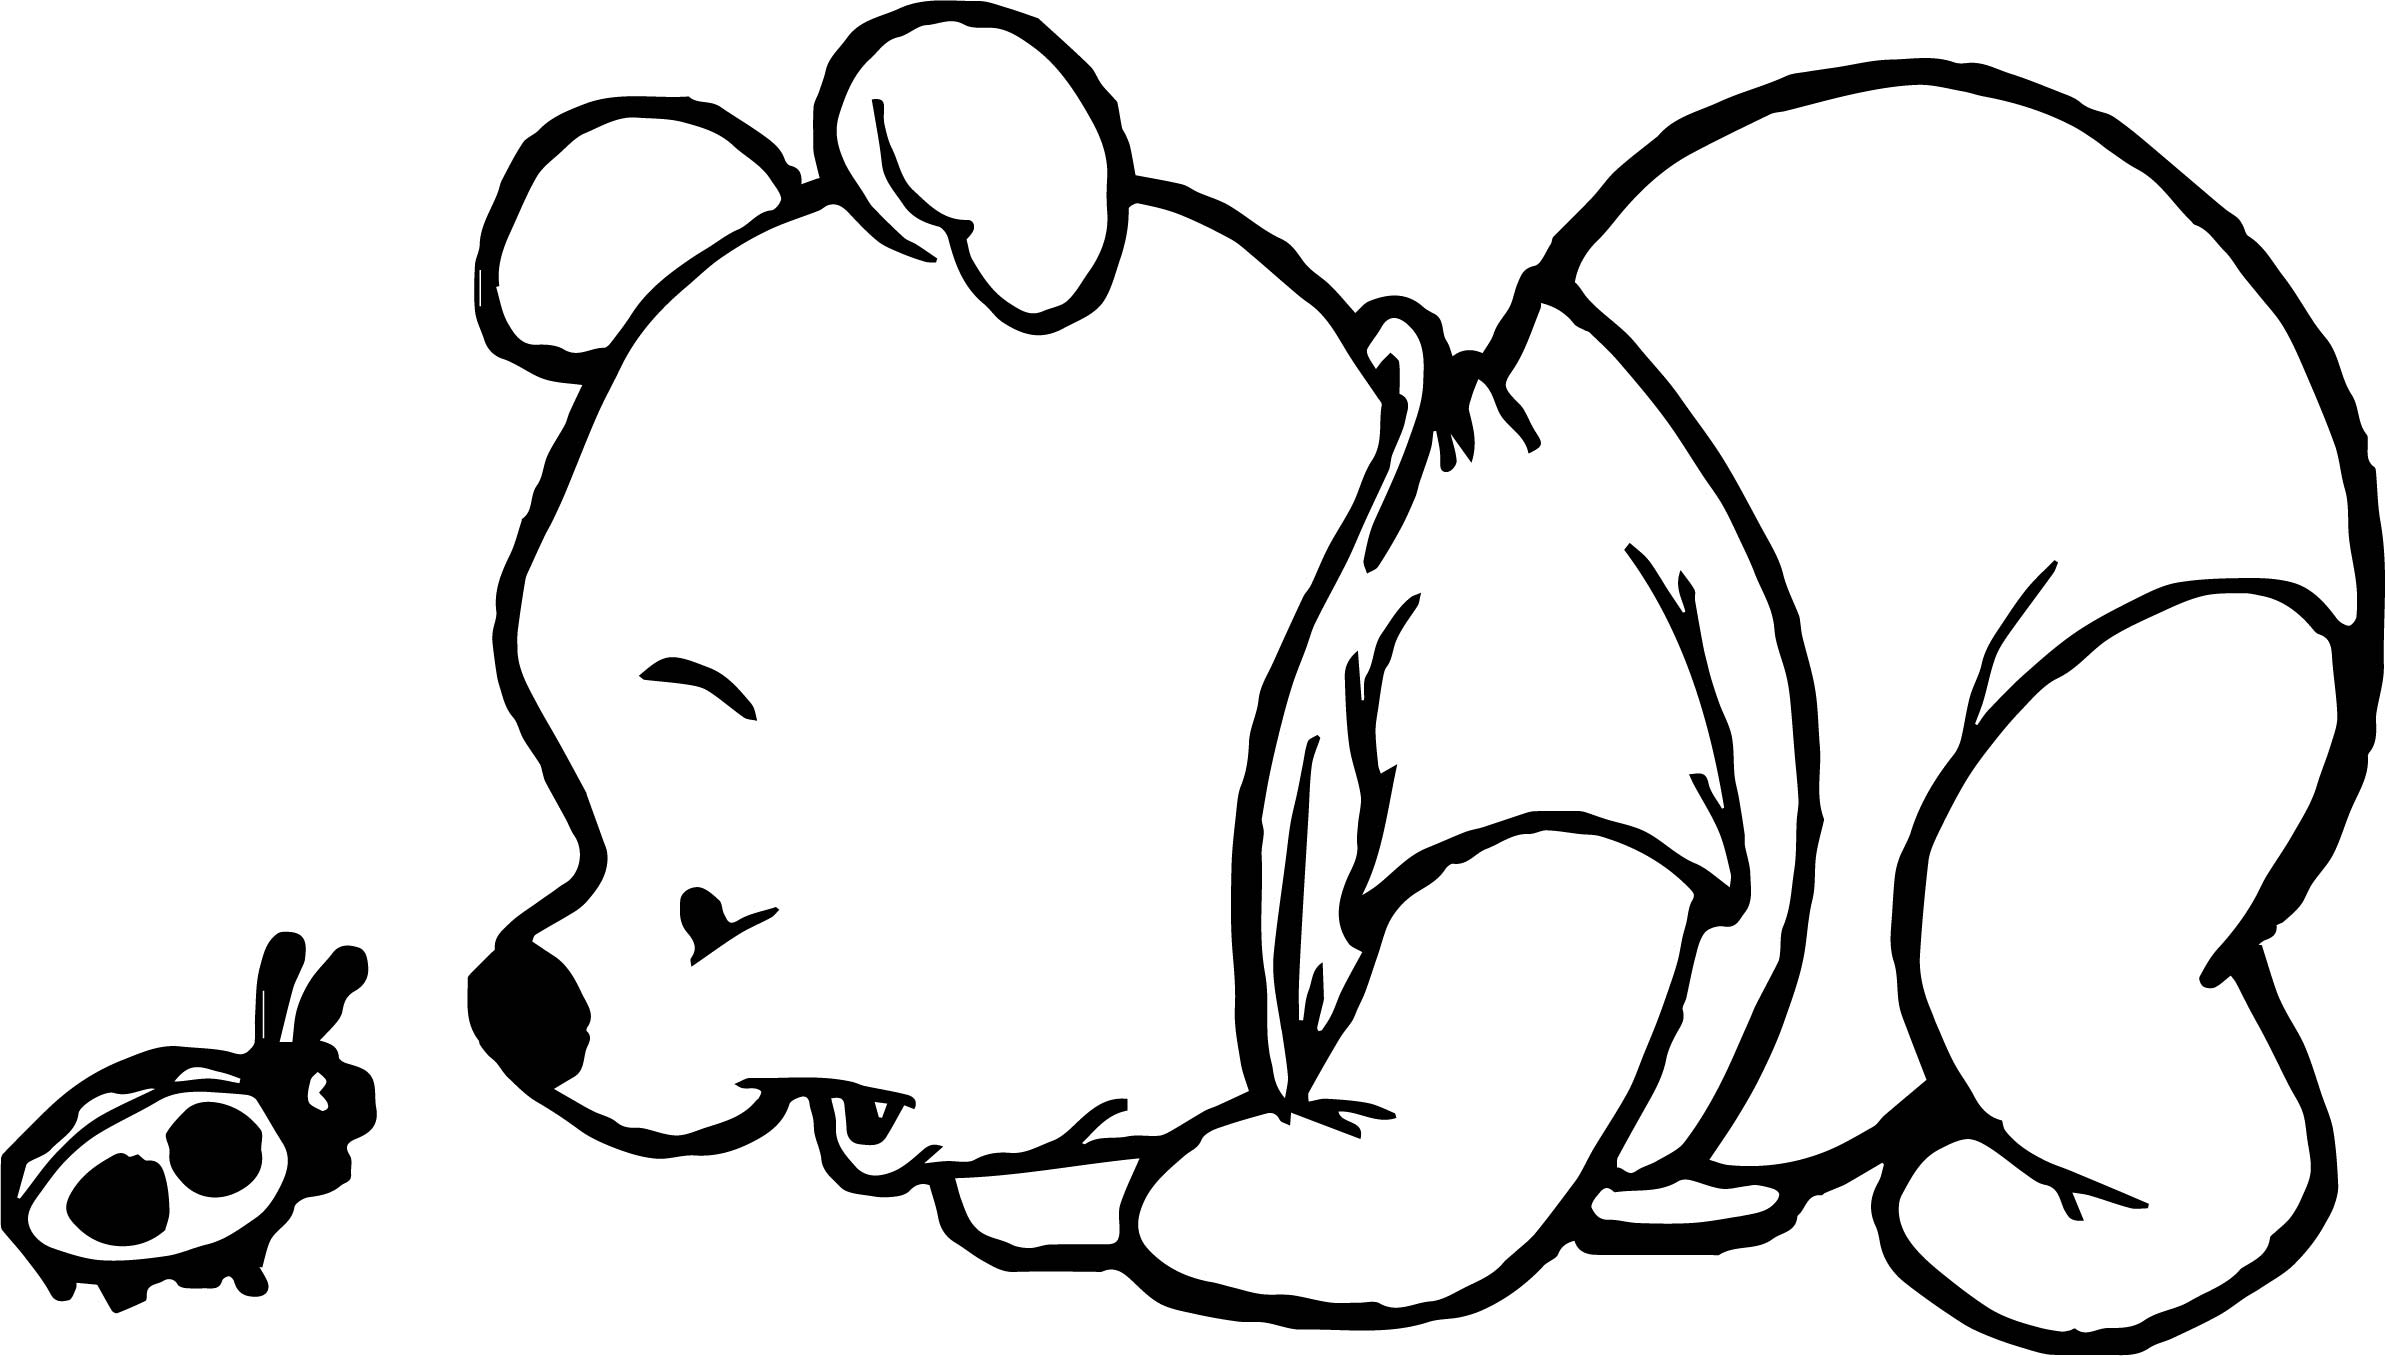 baby pooh lady bug coloring page - Bug Coloring Page